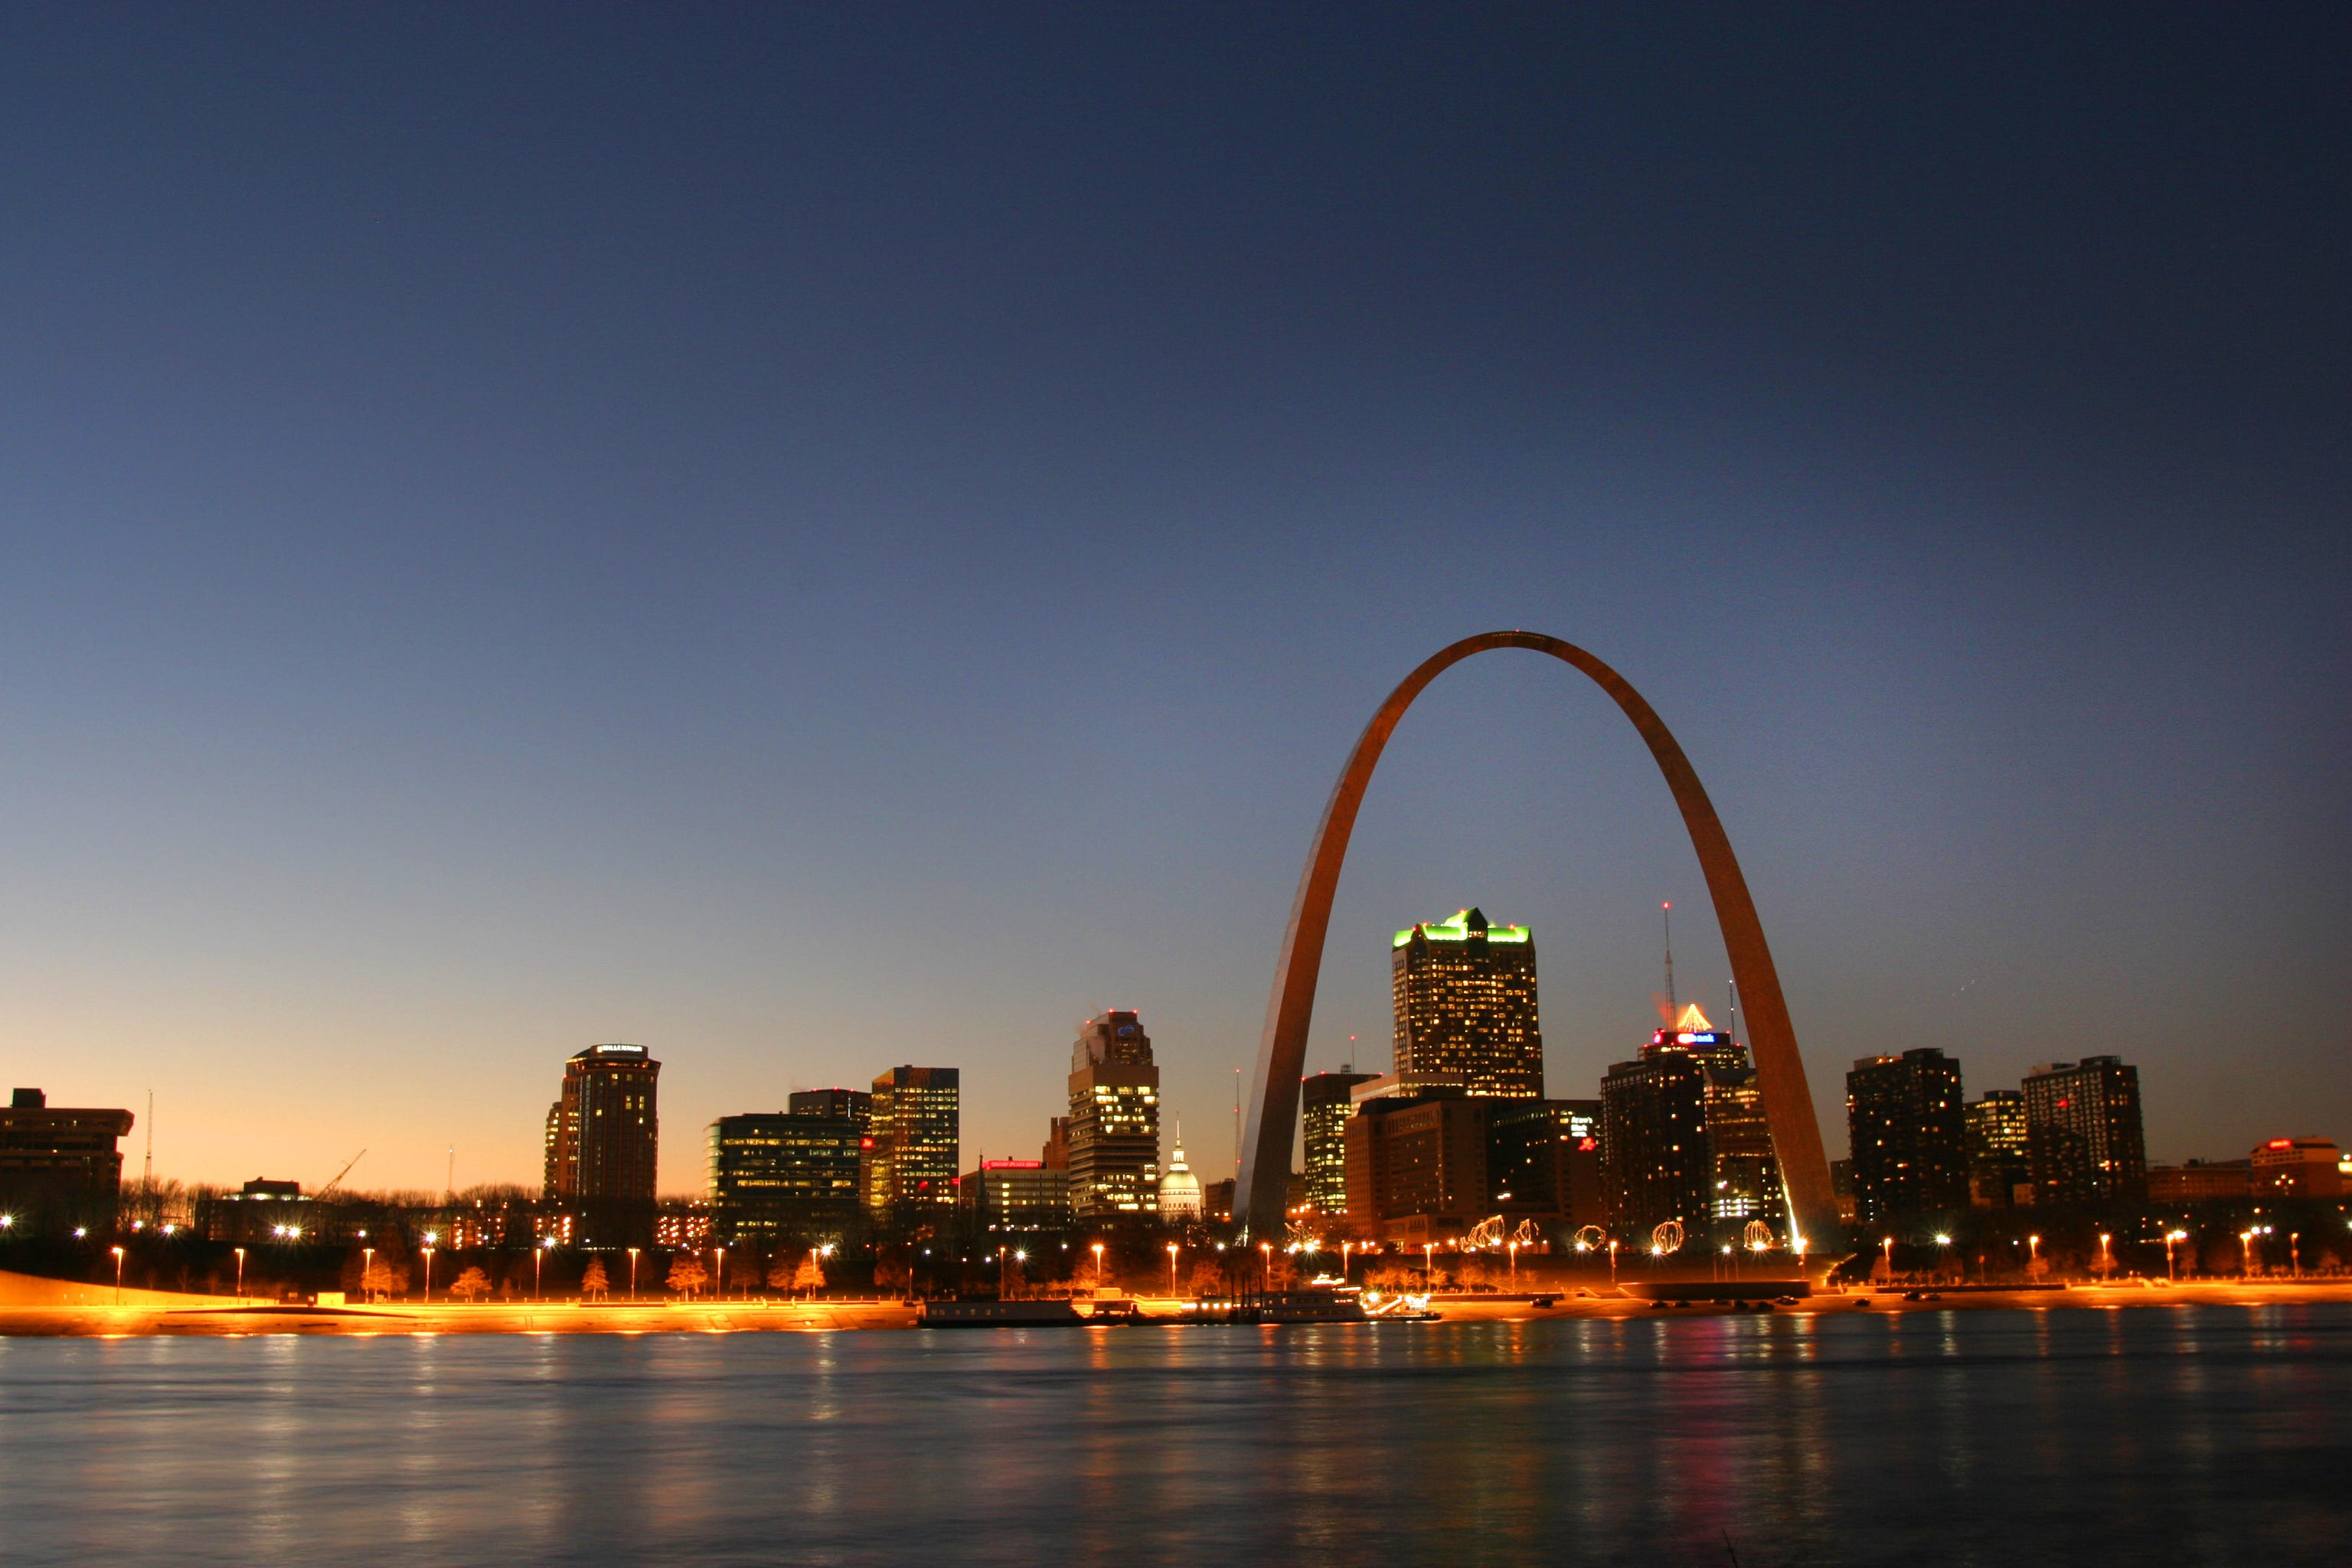 Gateway Arch National Park is an icon on the St. Louis skyline.